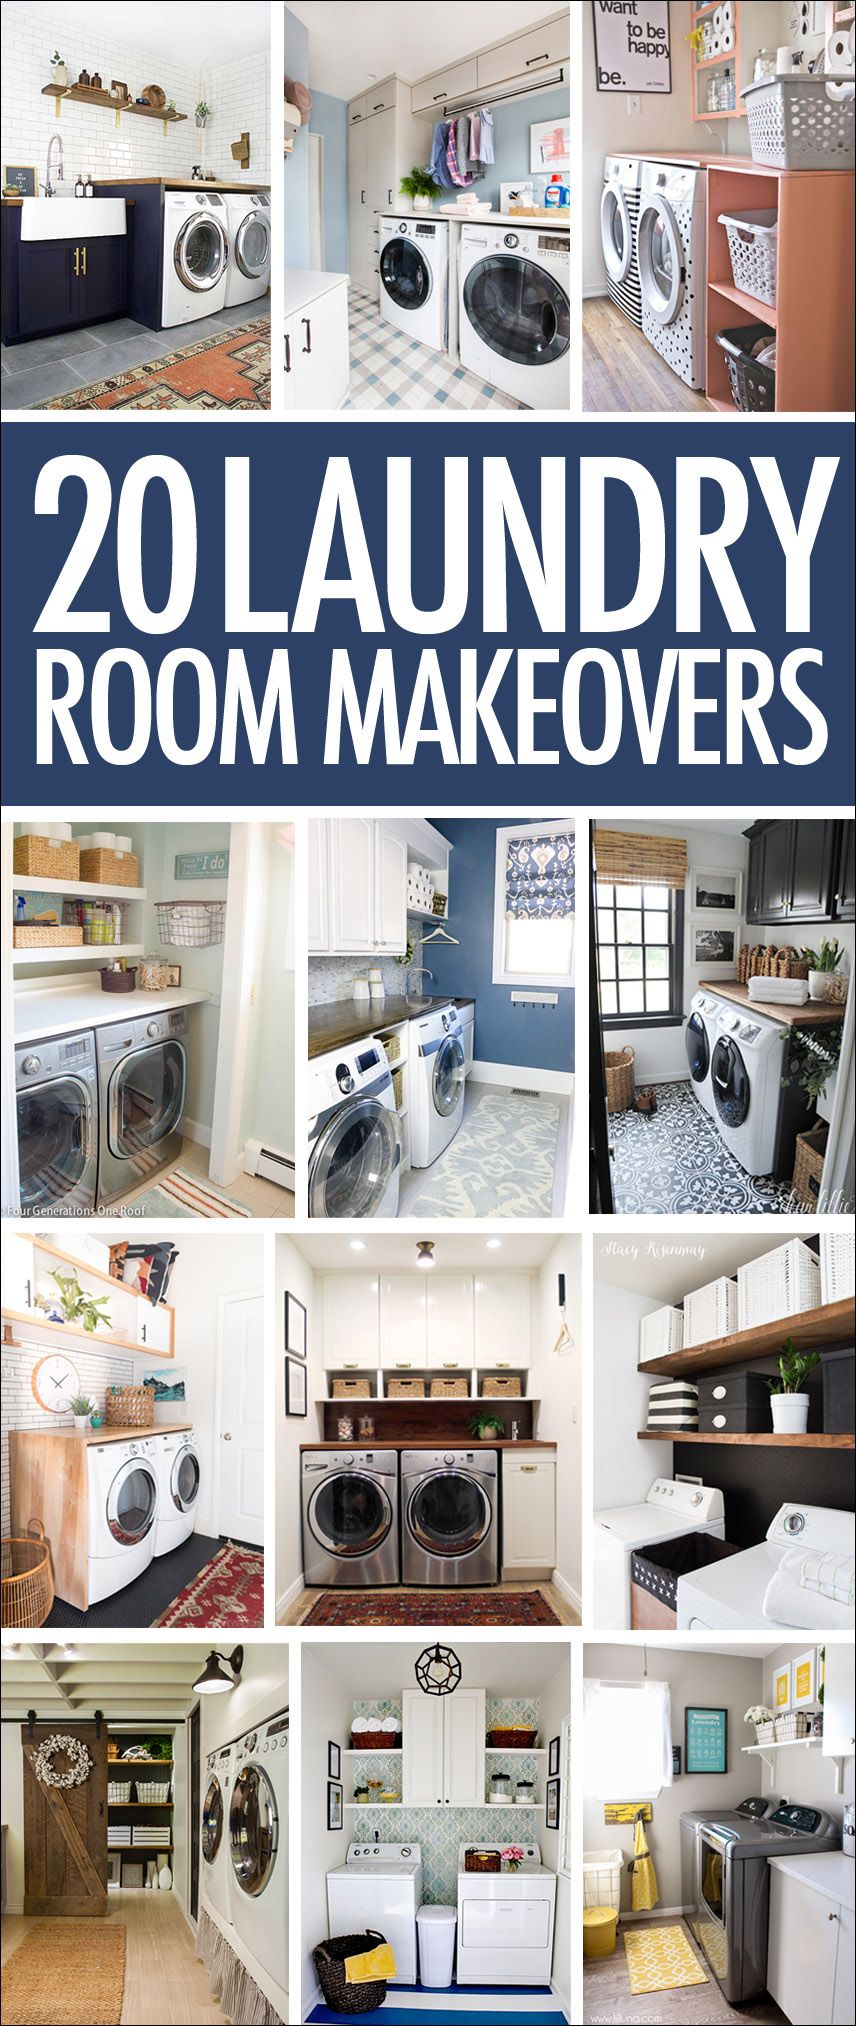 20 Laundry Room Makeovers Organization And Home Decor With